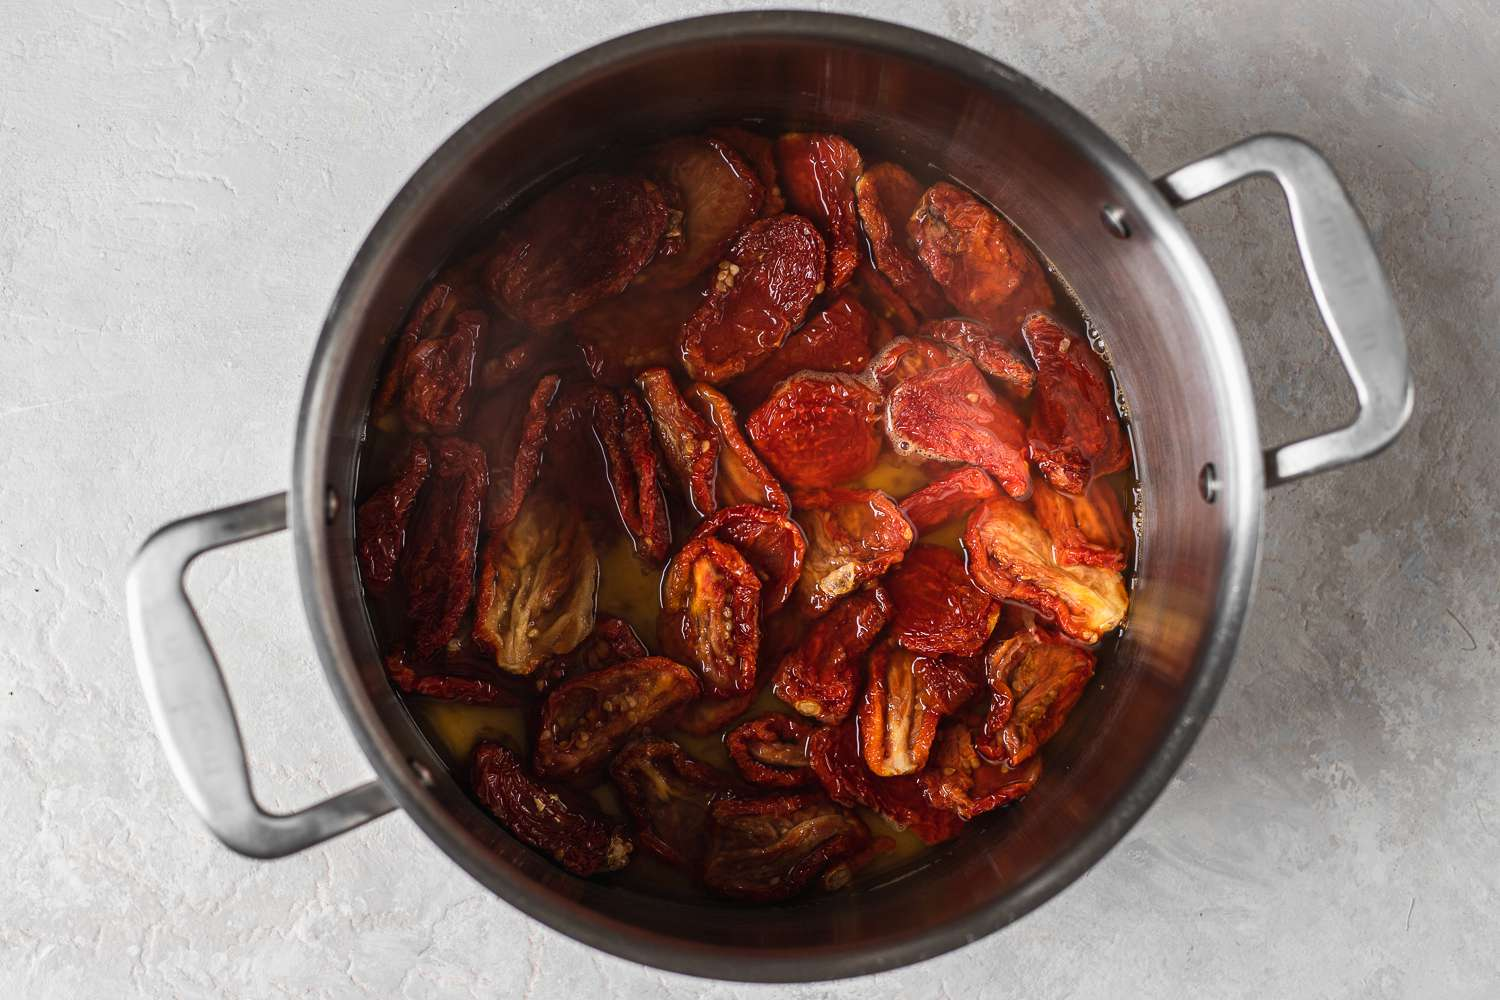 sun-dried tomatoes cooking in the vinegar mixture